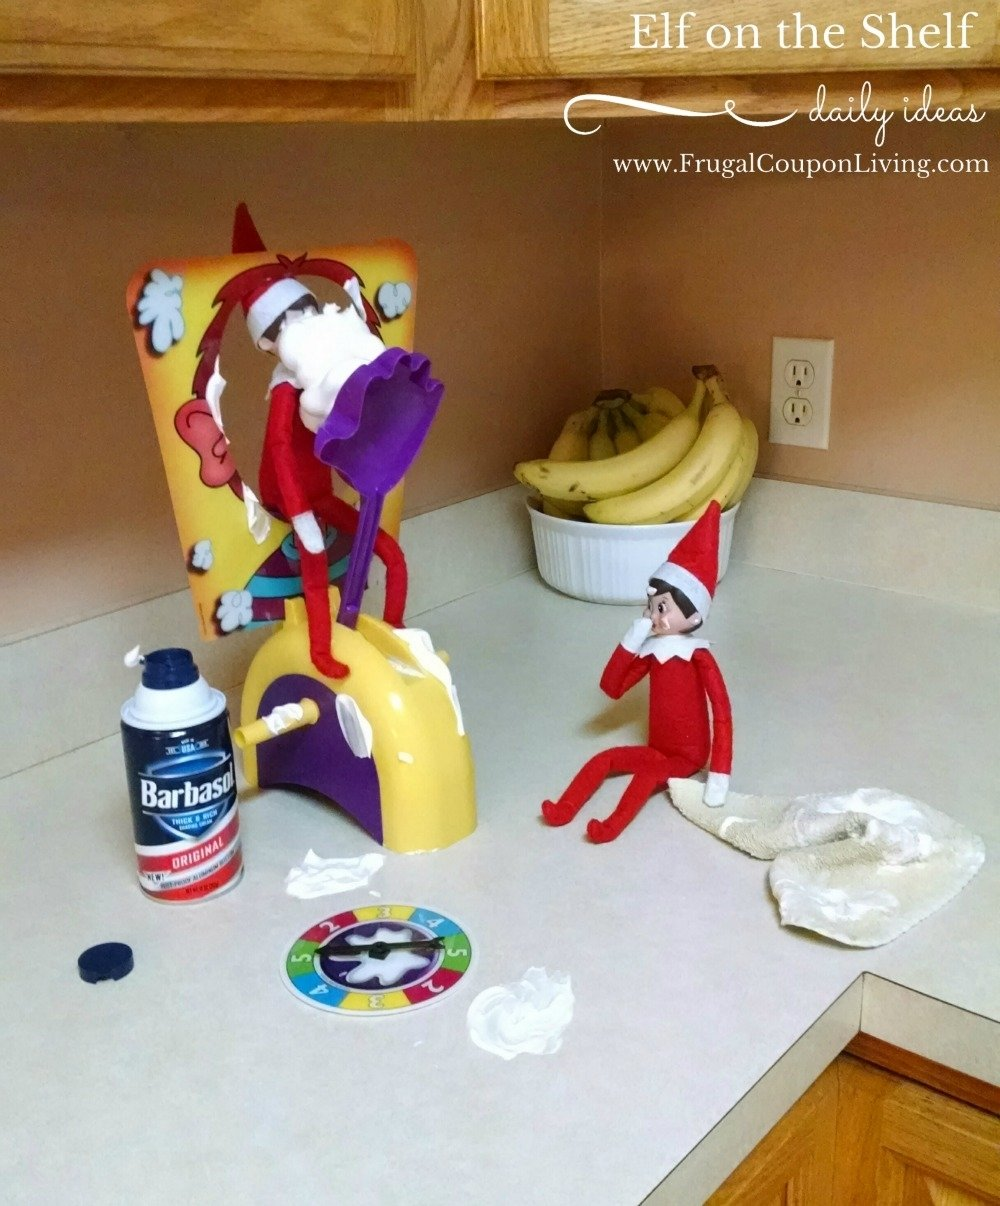 10 Pretty Ideas For Elf On A Shelf elf on the shelf ideas pie face elf 4 2021